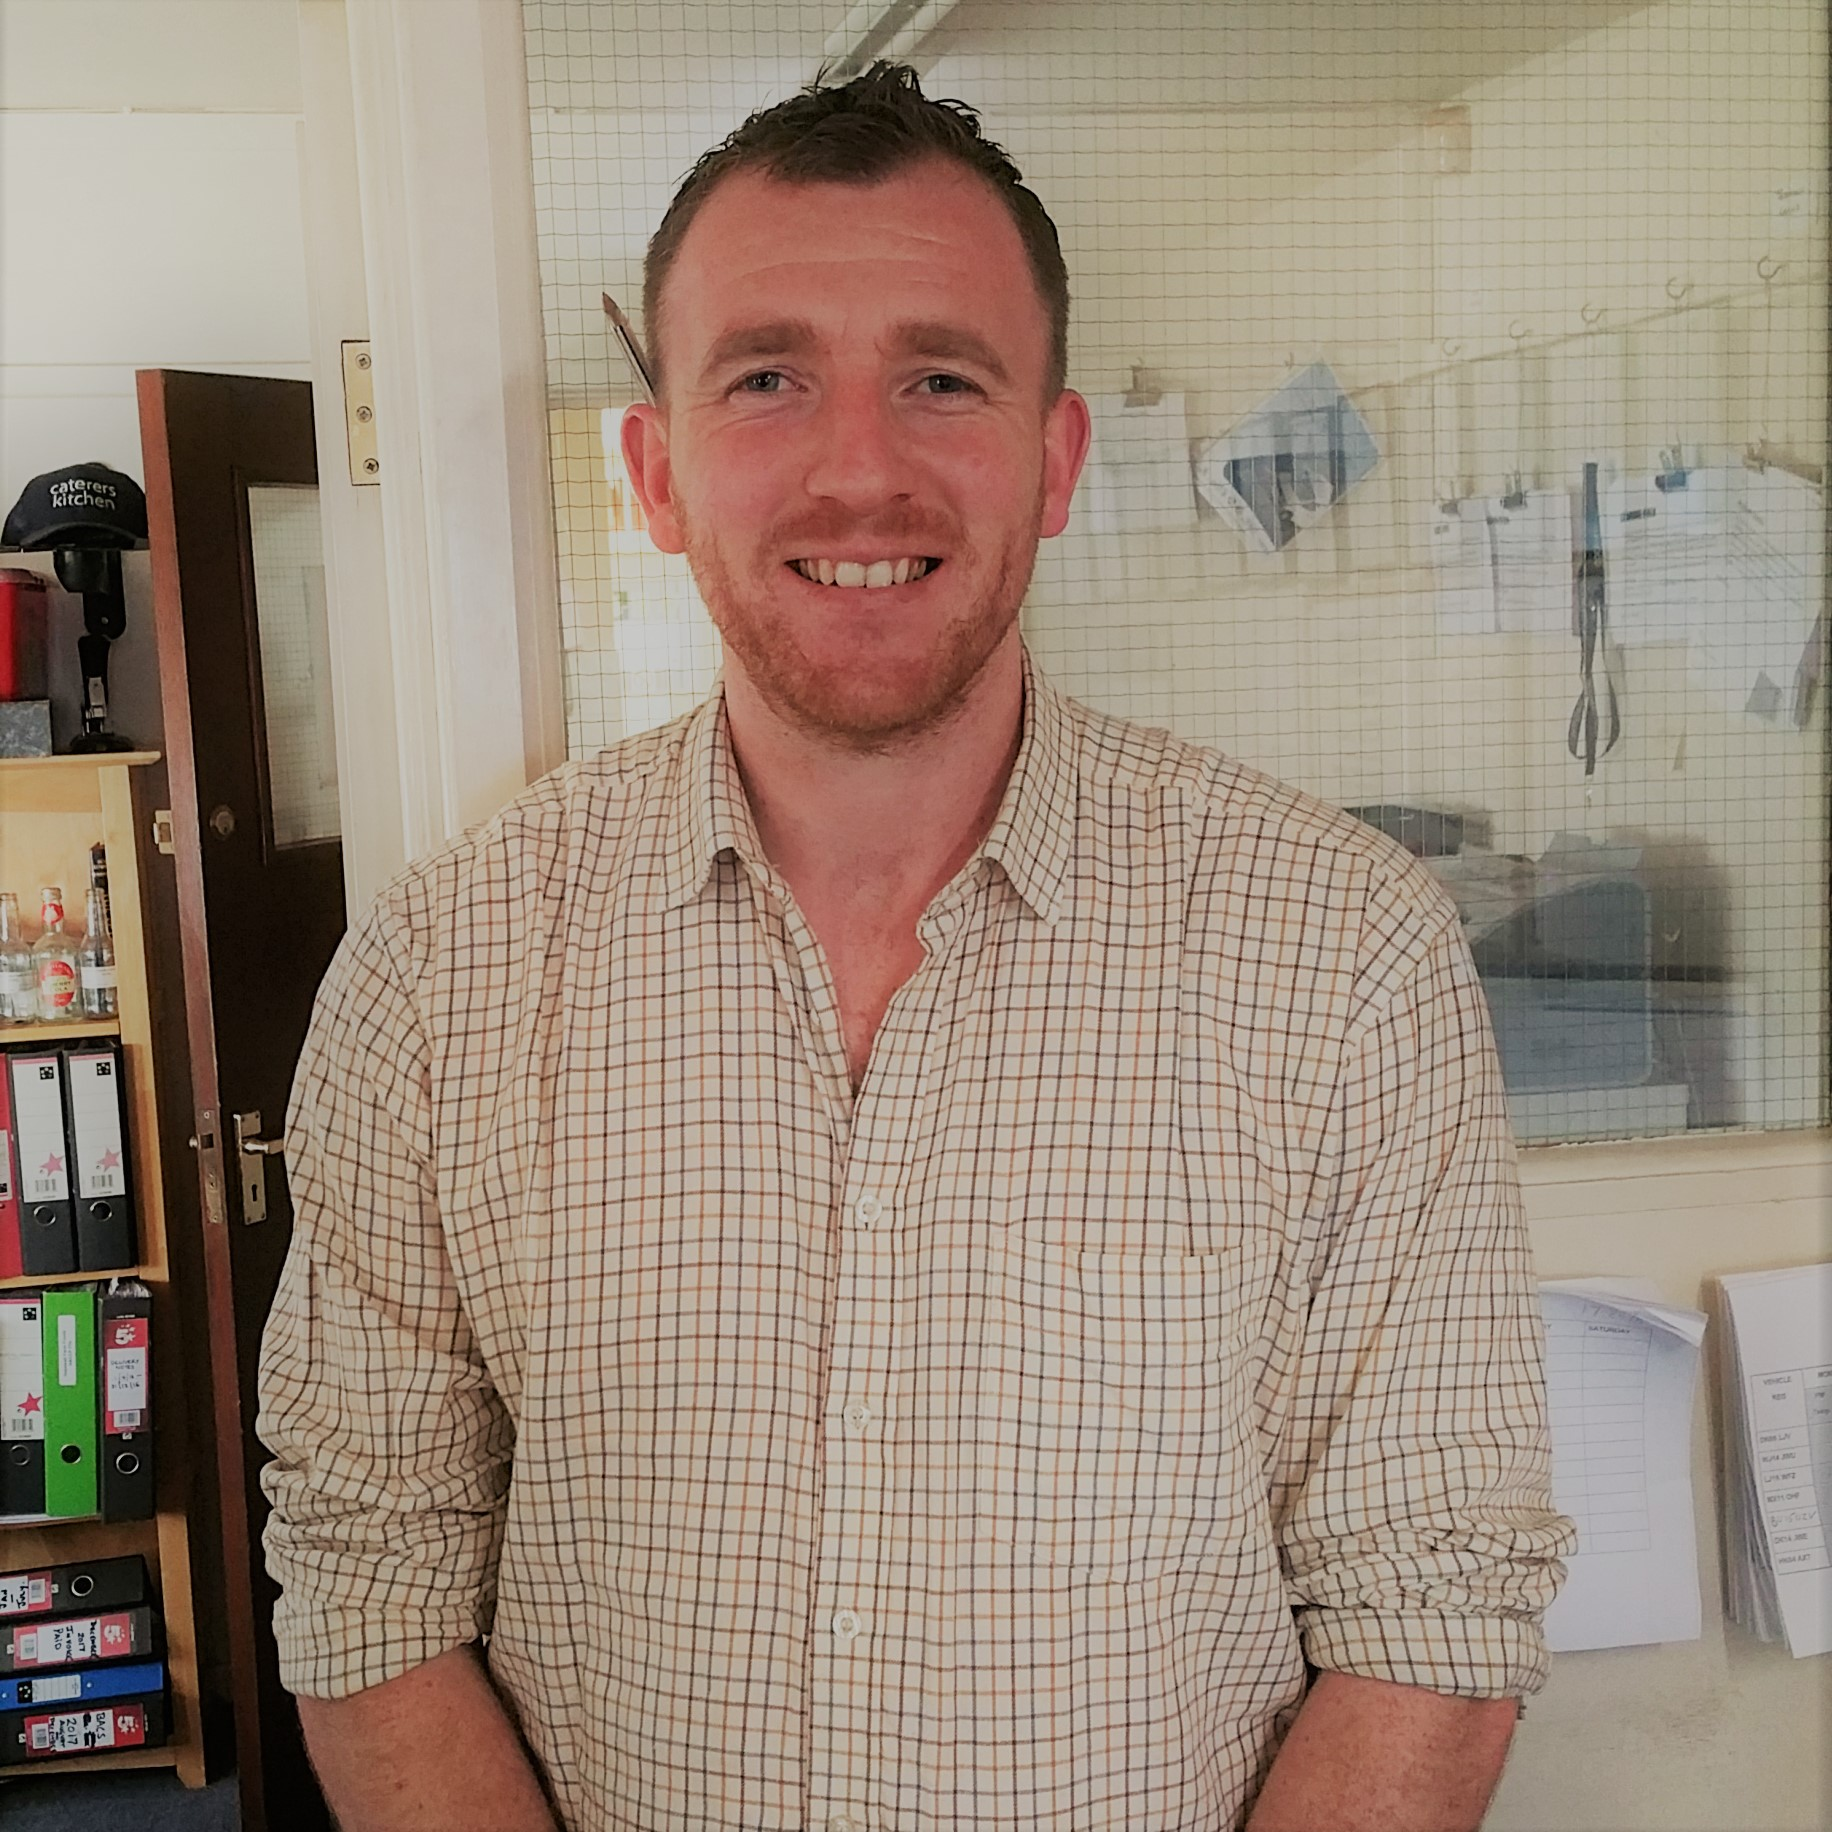 Jon Cairns - Local Dairy Sales   Having worked locally in dairy farming, Jon has built up a wealth of knowledge of the dairy industry and forged many local contacts. Jon covers the North West.